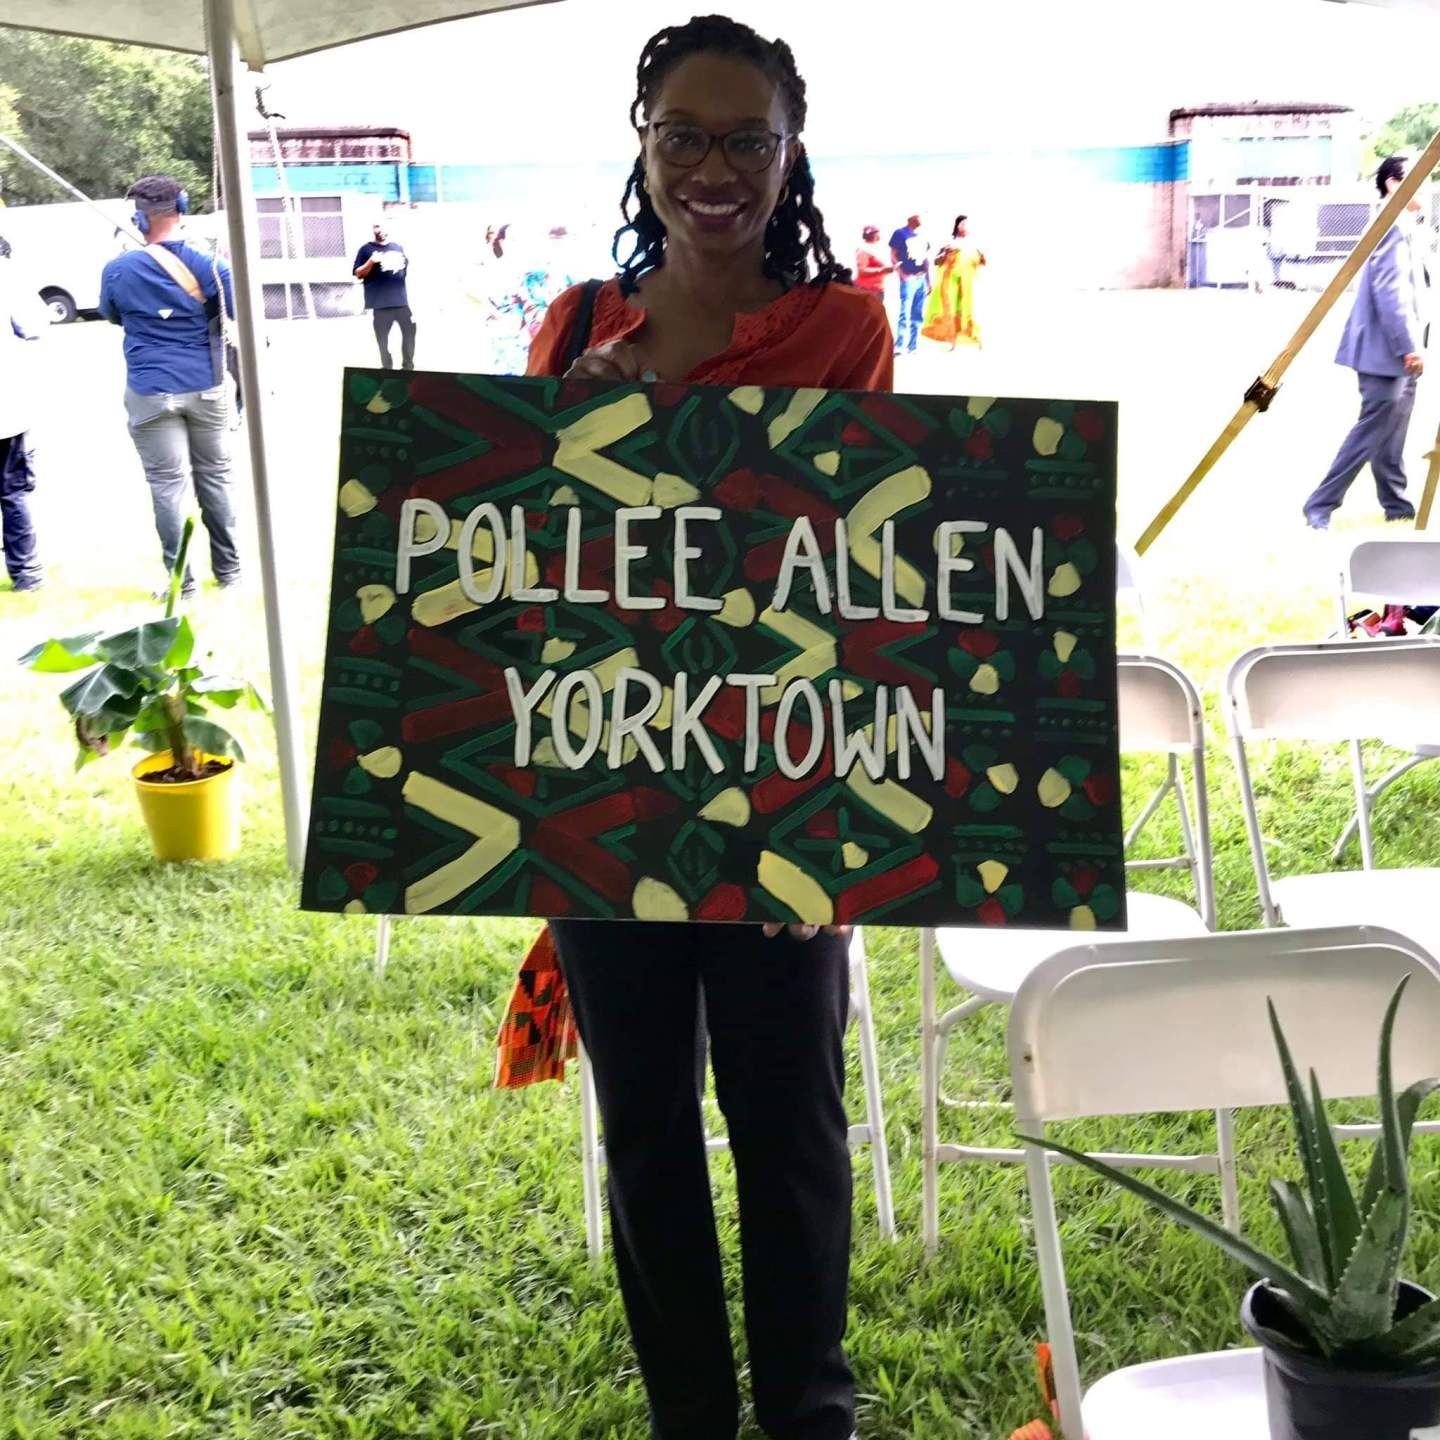 FB_IMG_1559275178256 Clotilda: Historic Discovery in Africatown, Alabama